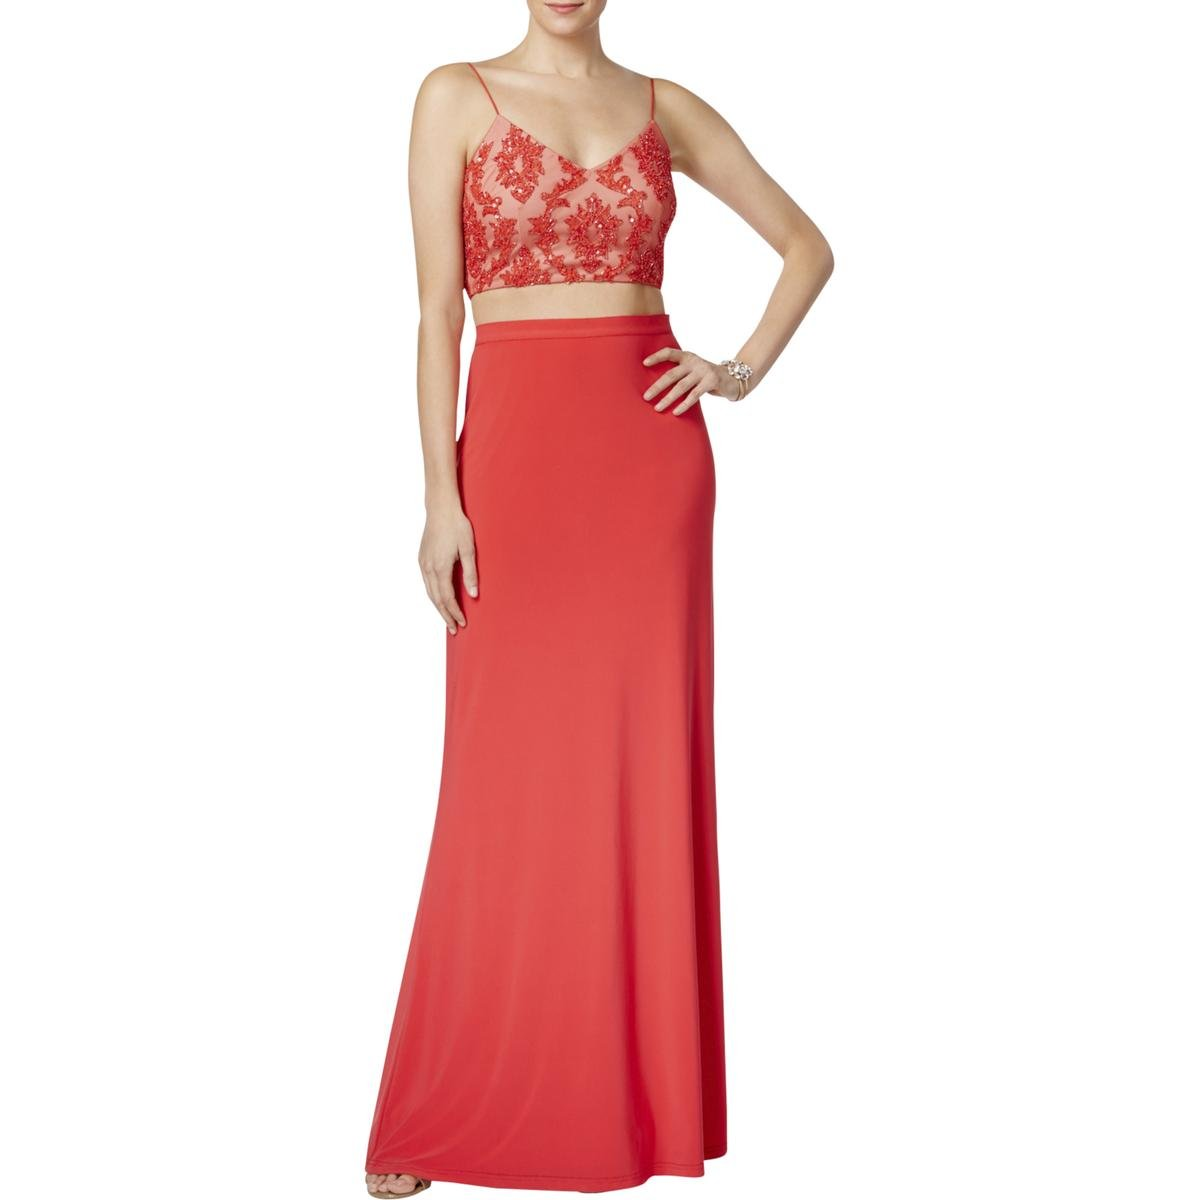 Available at Amazon: Adrianna Papell $279 New 1190 Red Beaded Sequined 2 Pc Dress 10 Petites B+B